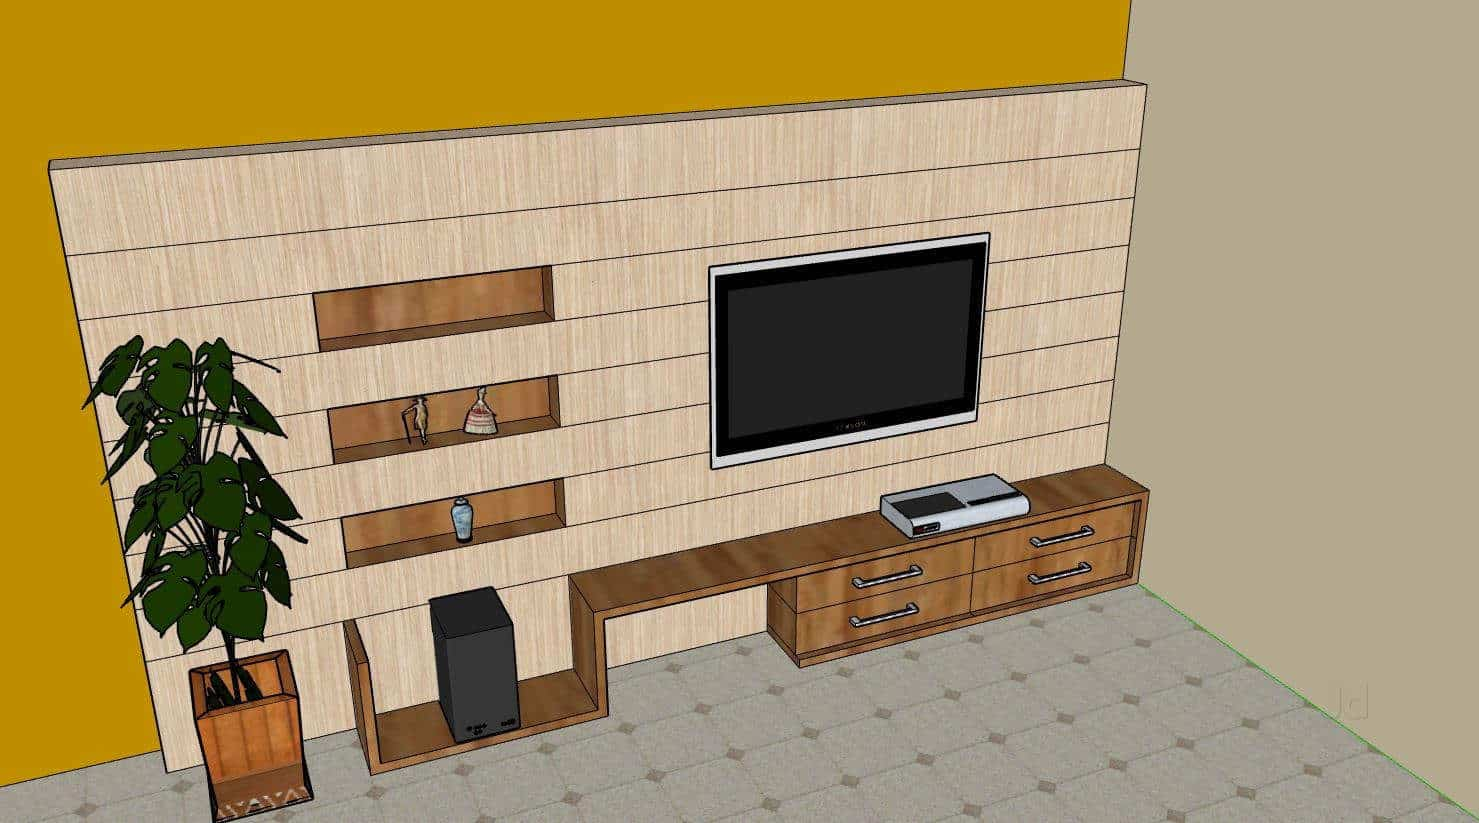 Living room design design n deco interior designer photos kalyani nagar